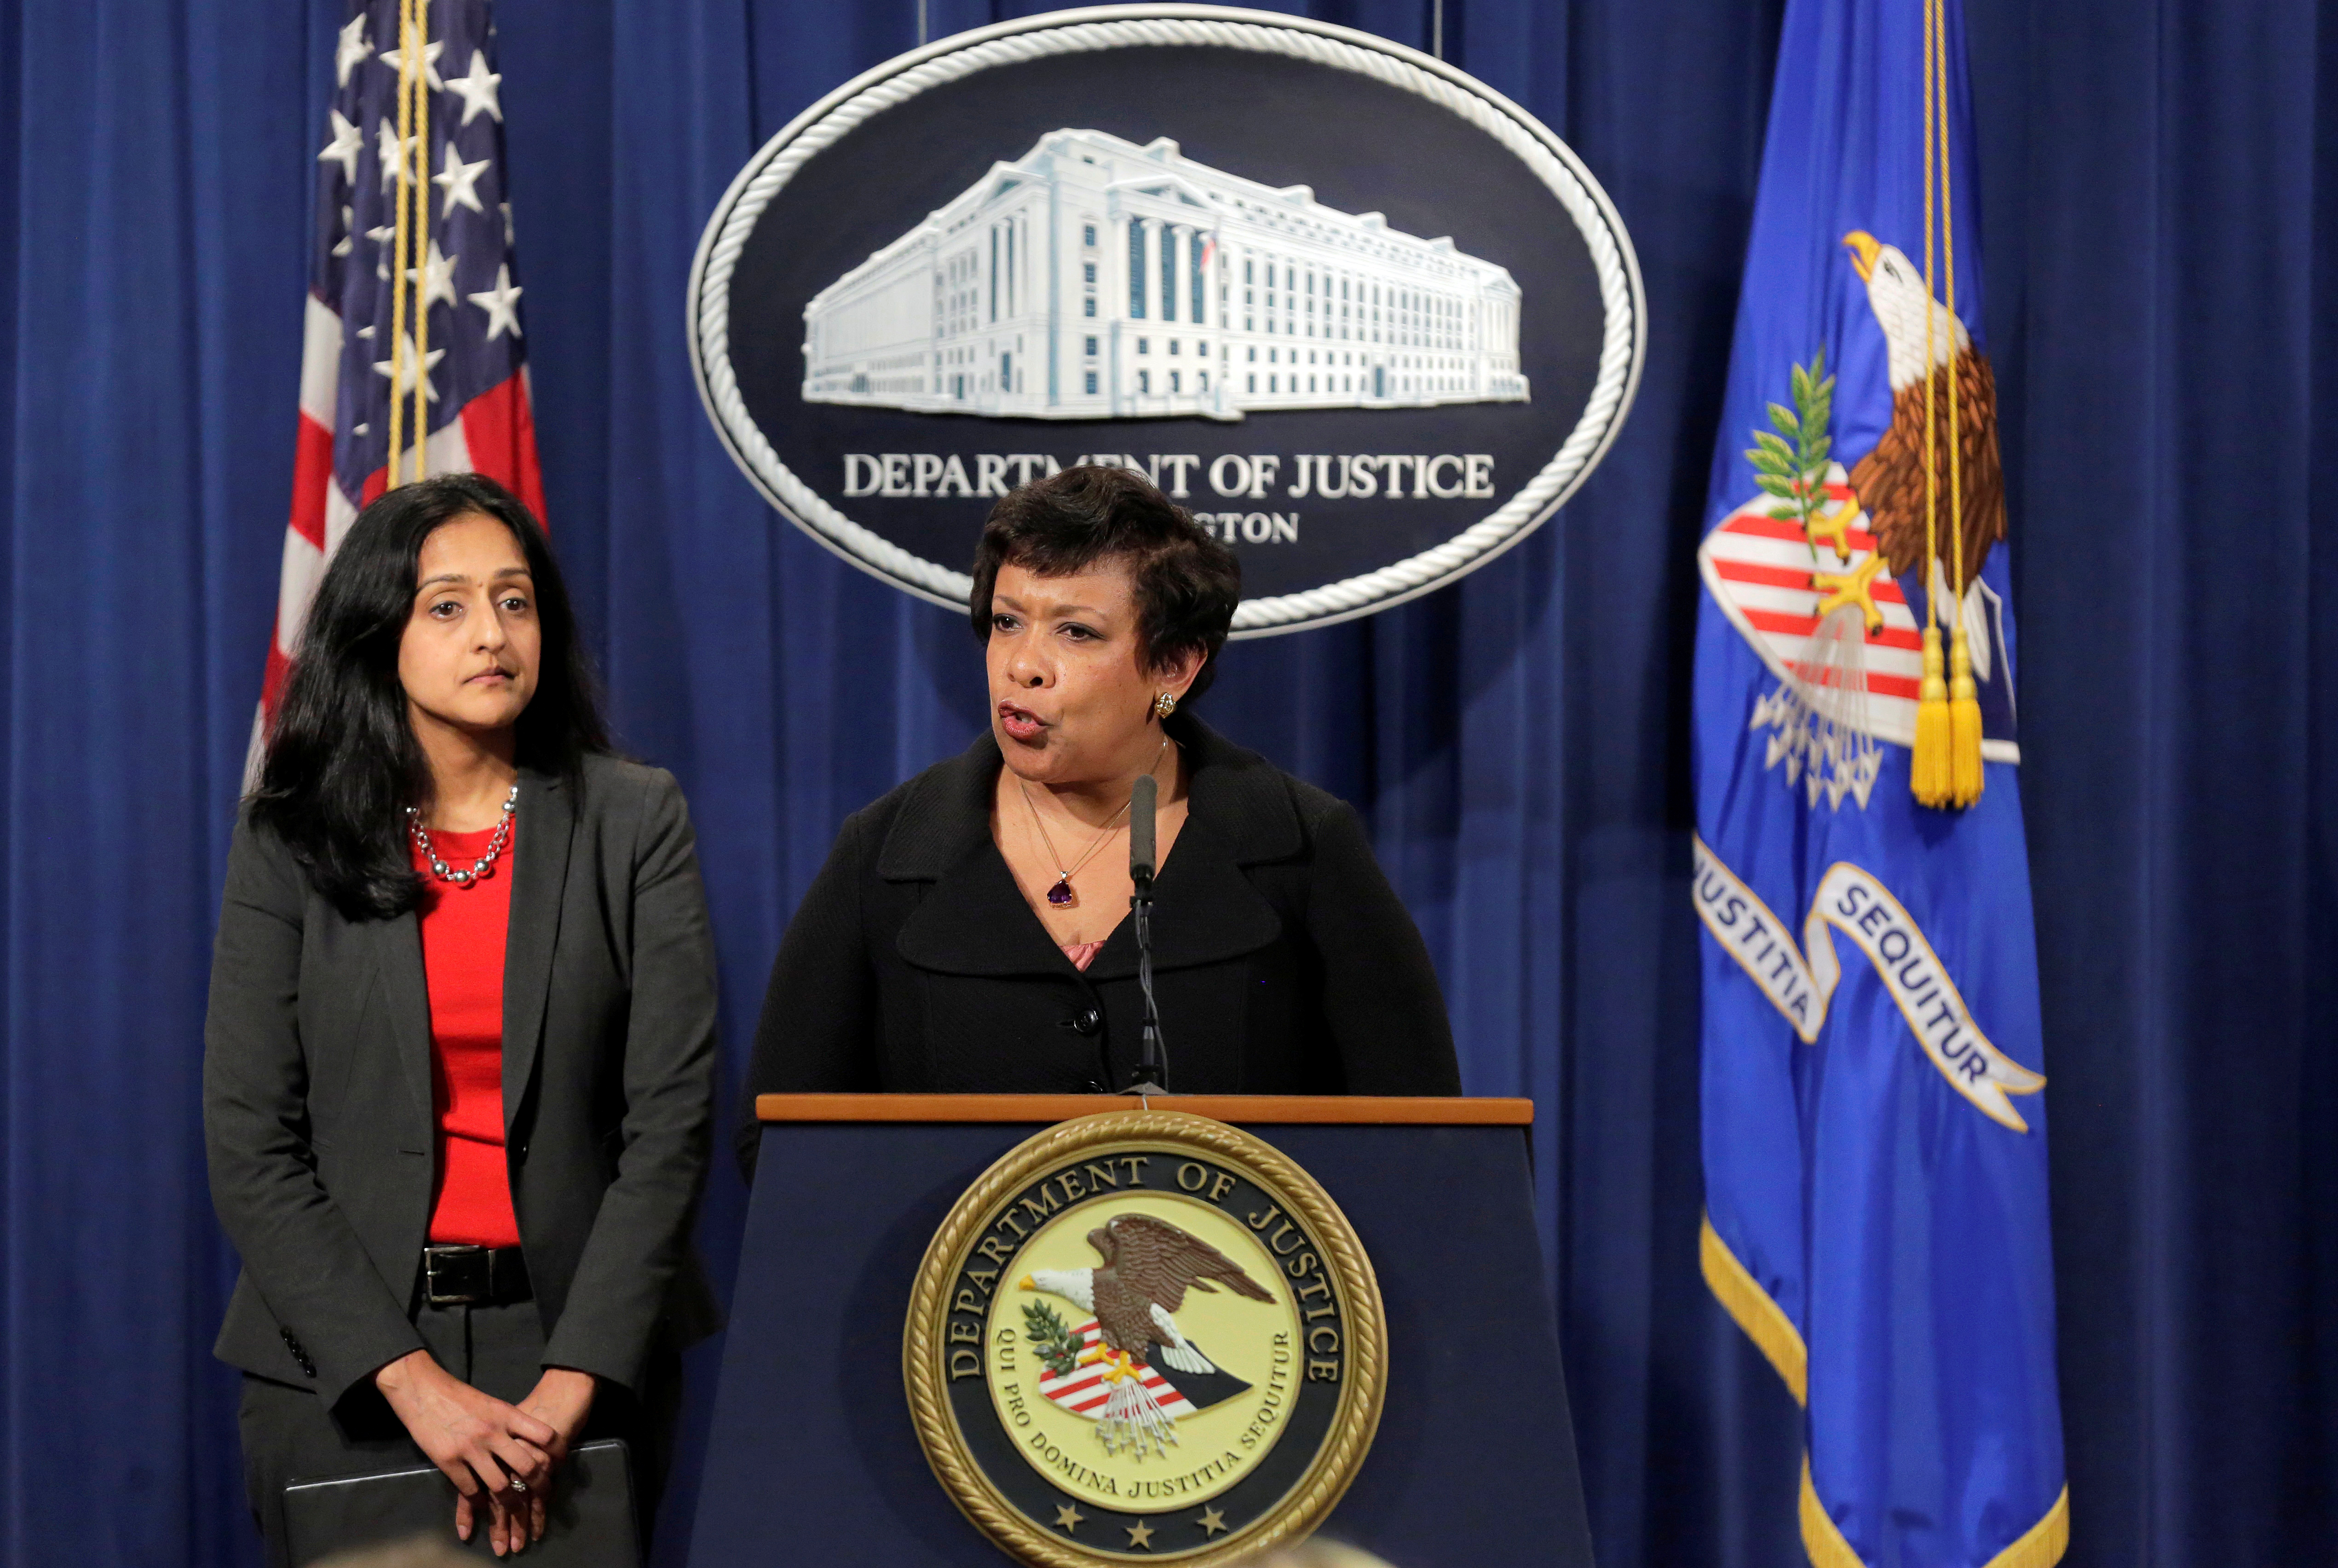 Attorney General Loretta E. Lynch (R) and Principal Deputy Assistant Attorney General Vanita Gupta, head of the Civil Rights Division, announce law enforcement action against the state of North Carolina in Washington, U.S., May 9, 2016. REUTERS/Joshua Roberts TPX IMAGES OF THE DAY - RTX2DJXF